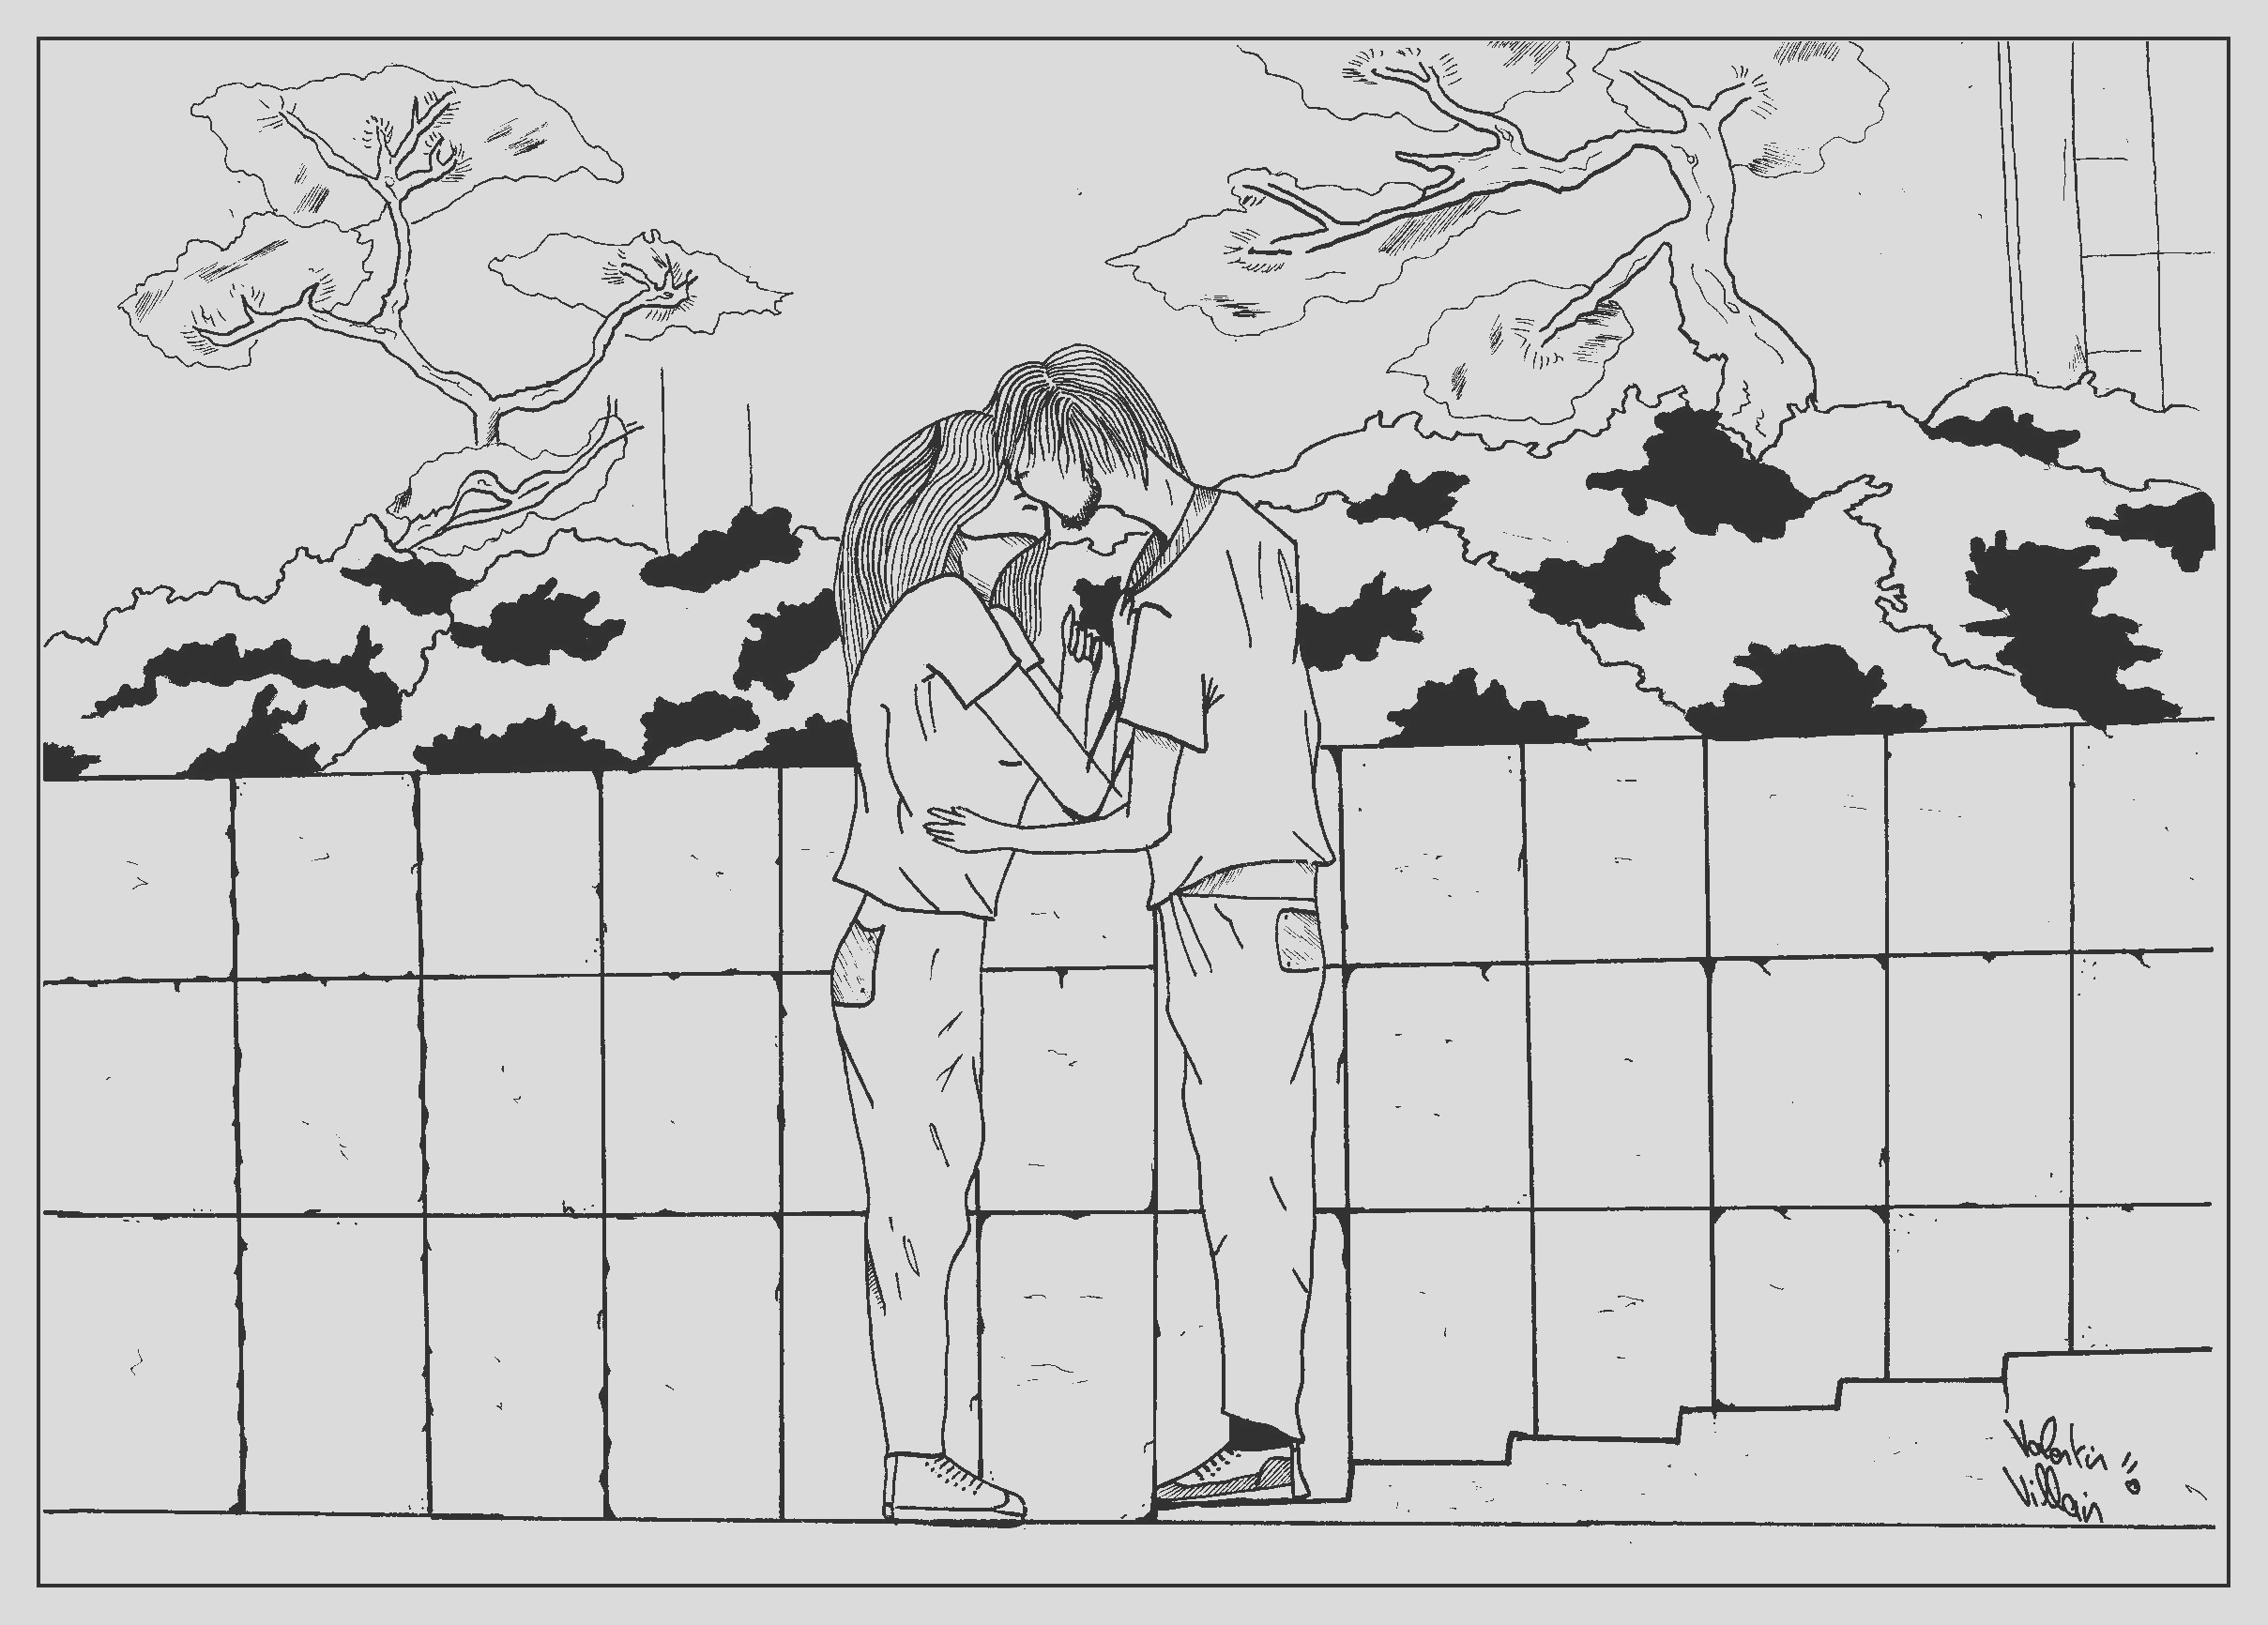 image=st valentines day coloring page adult st valentine by valentin 1